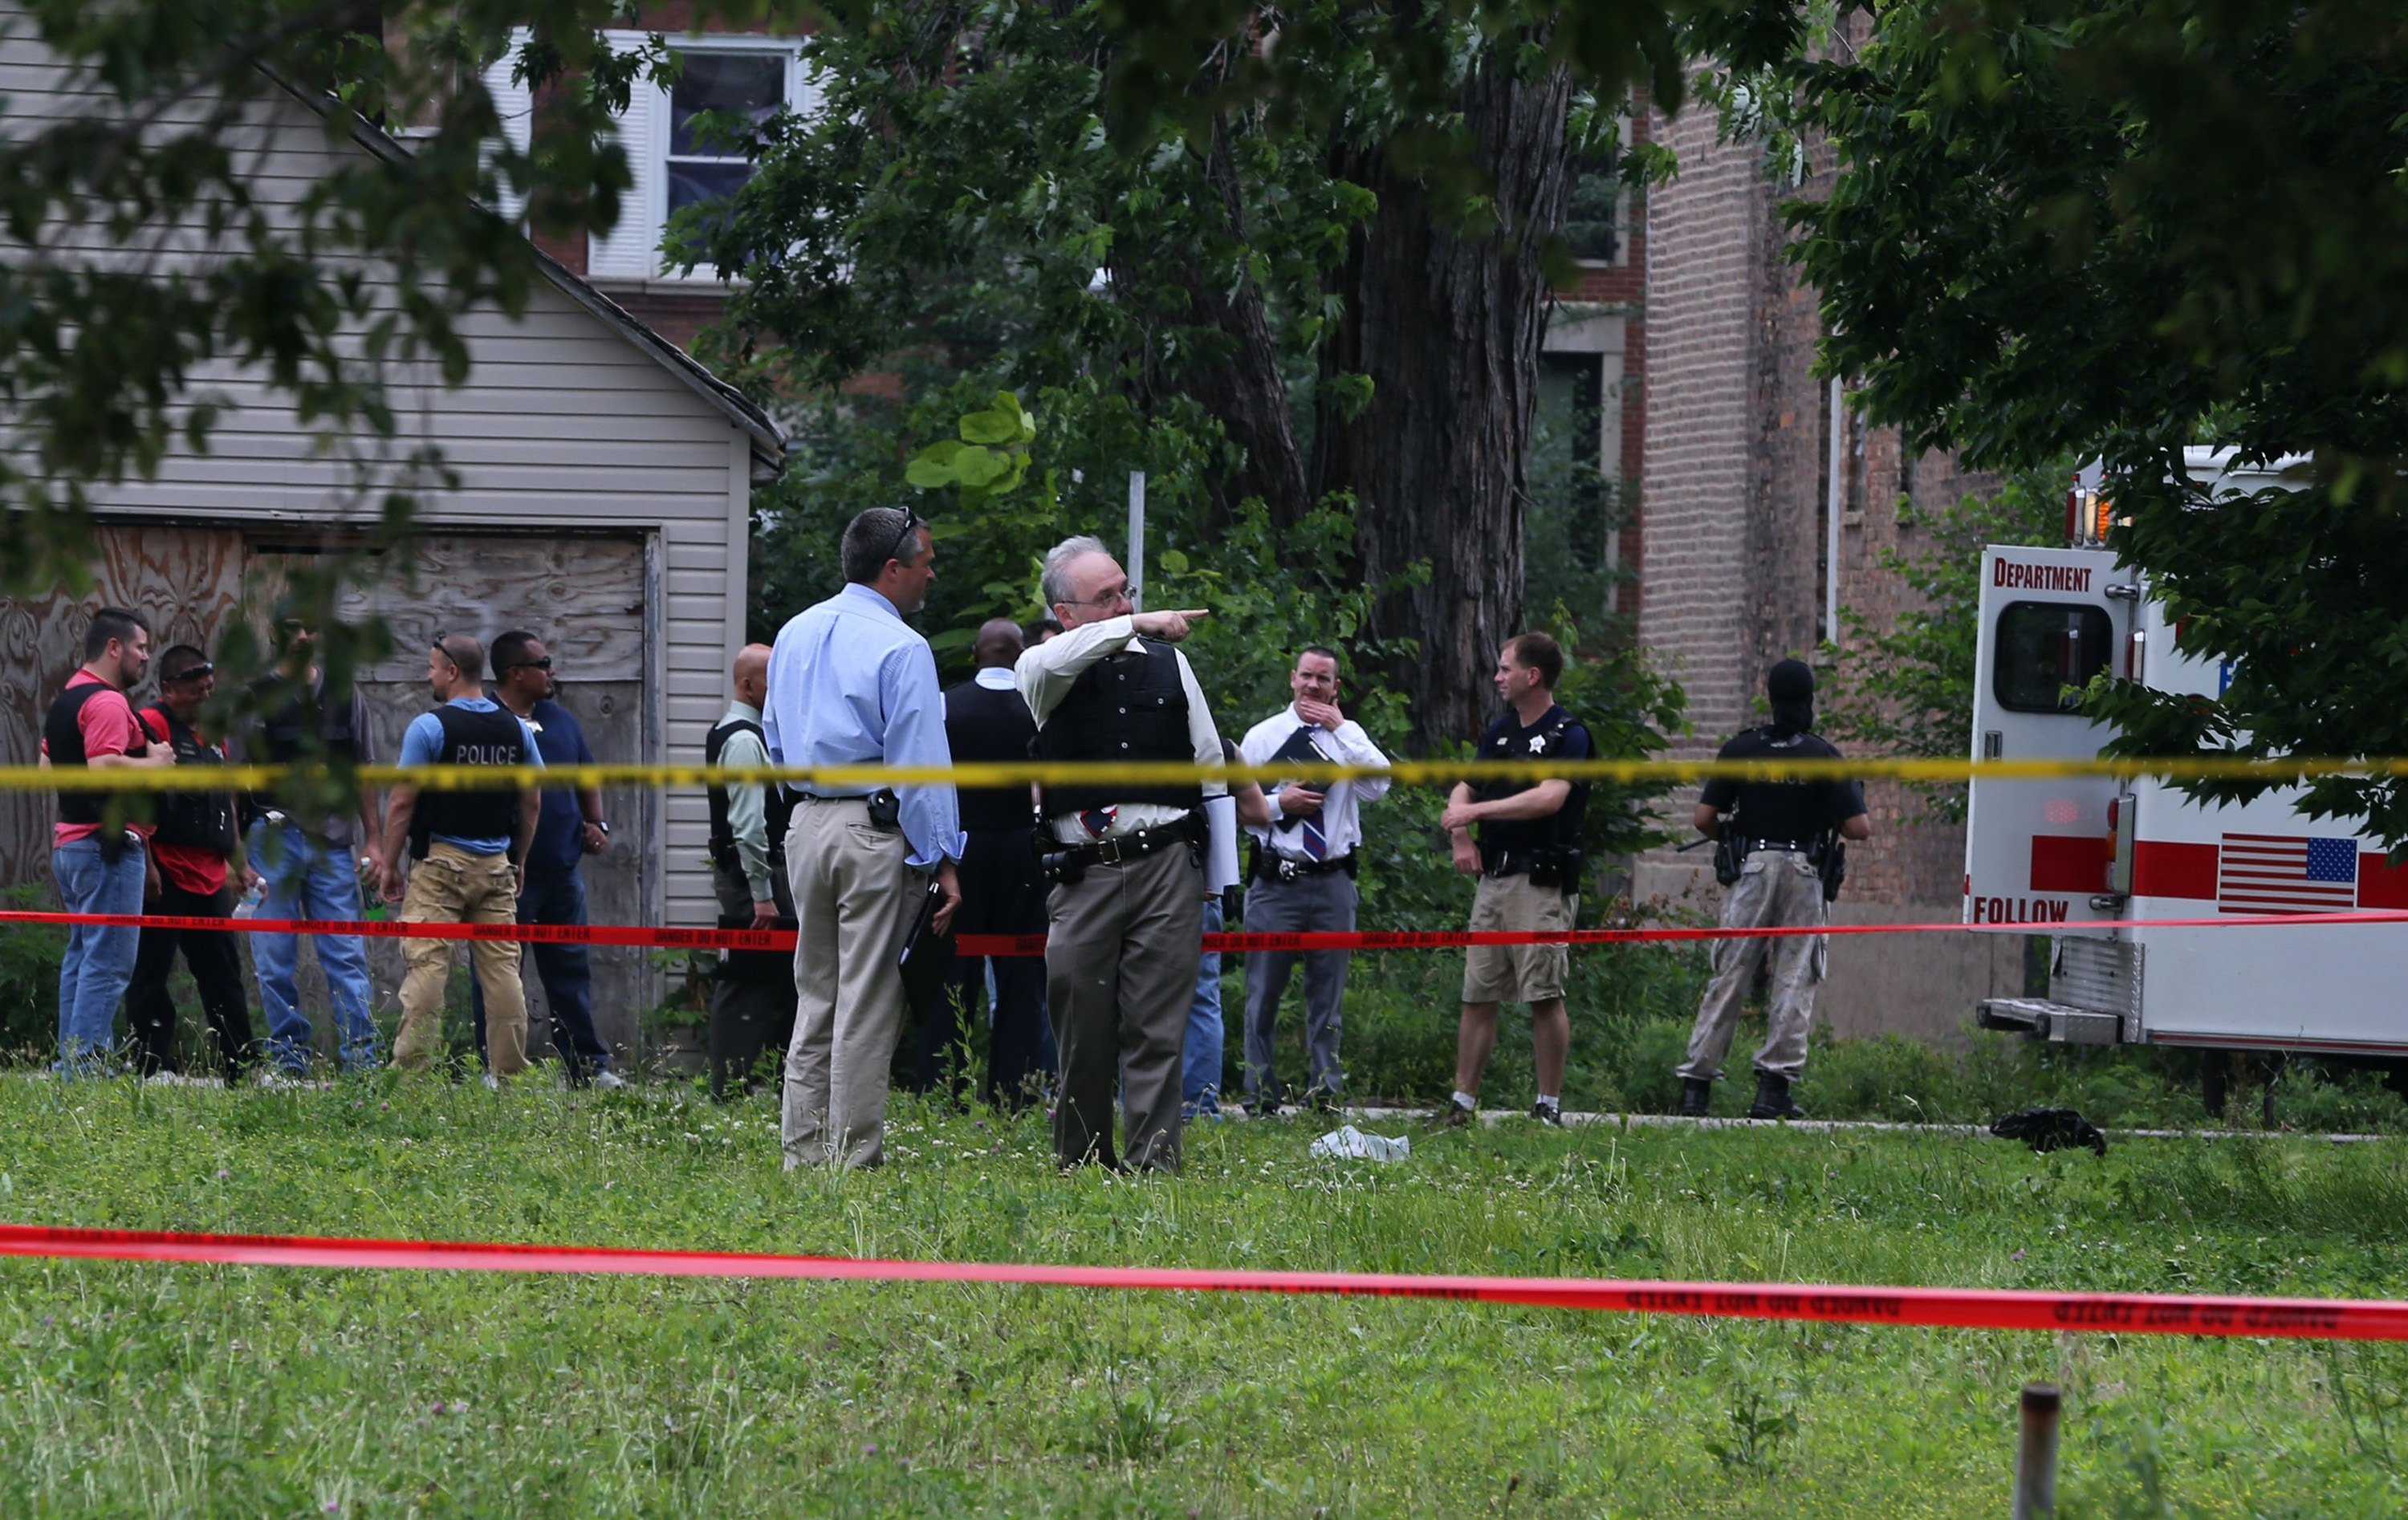 Officers investigate the scene of the police-involved shooting of Christian Green, 17, in the 5600 block of South State State on July 4, 2013 in Chicago. Officer Robert Gonzalez said Green turned and pointed a gun at him during a short chase through the Washington Park neighborhood. (Antonio Perez/Chicago Tribune/TNS via Getty Images)